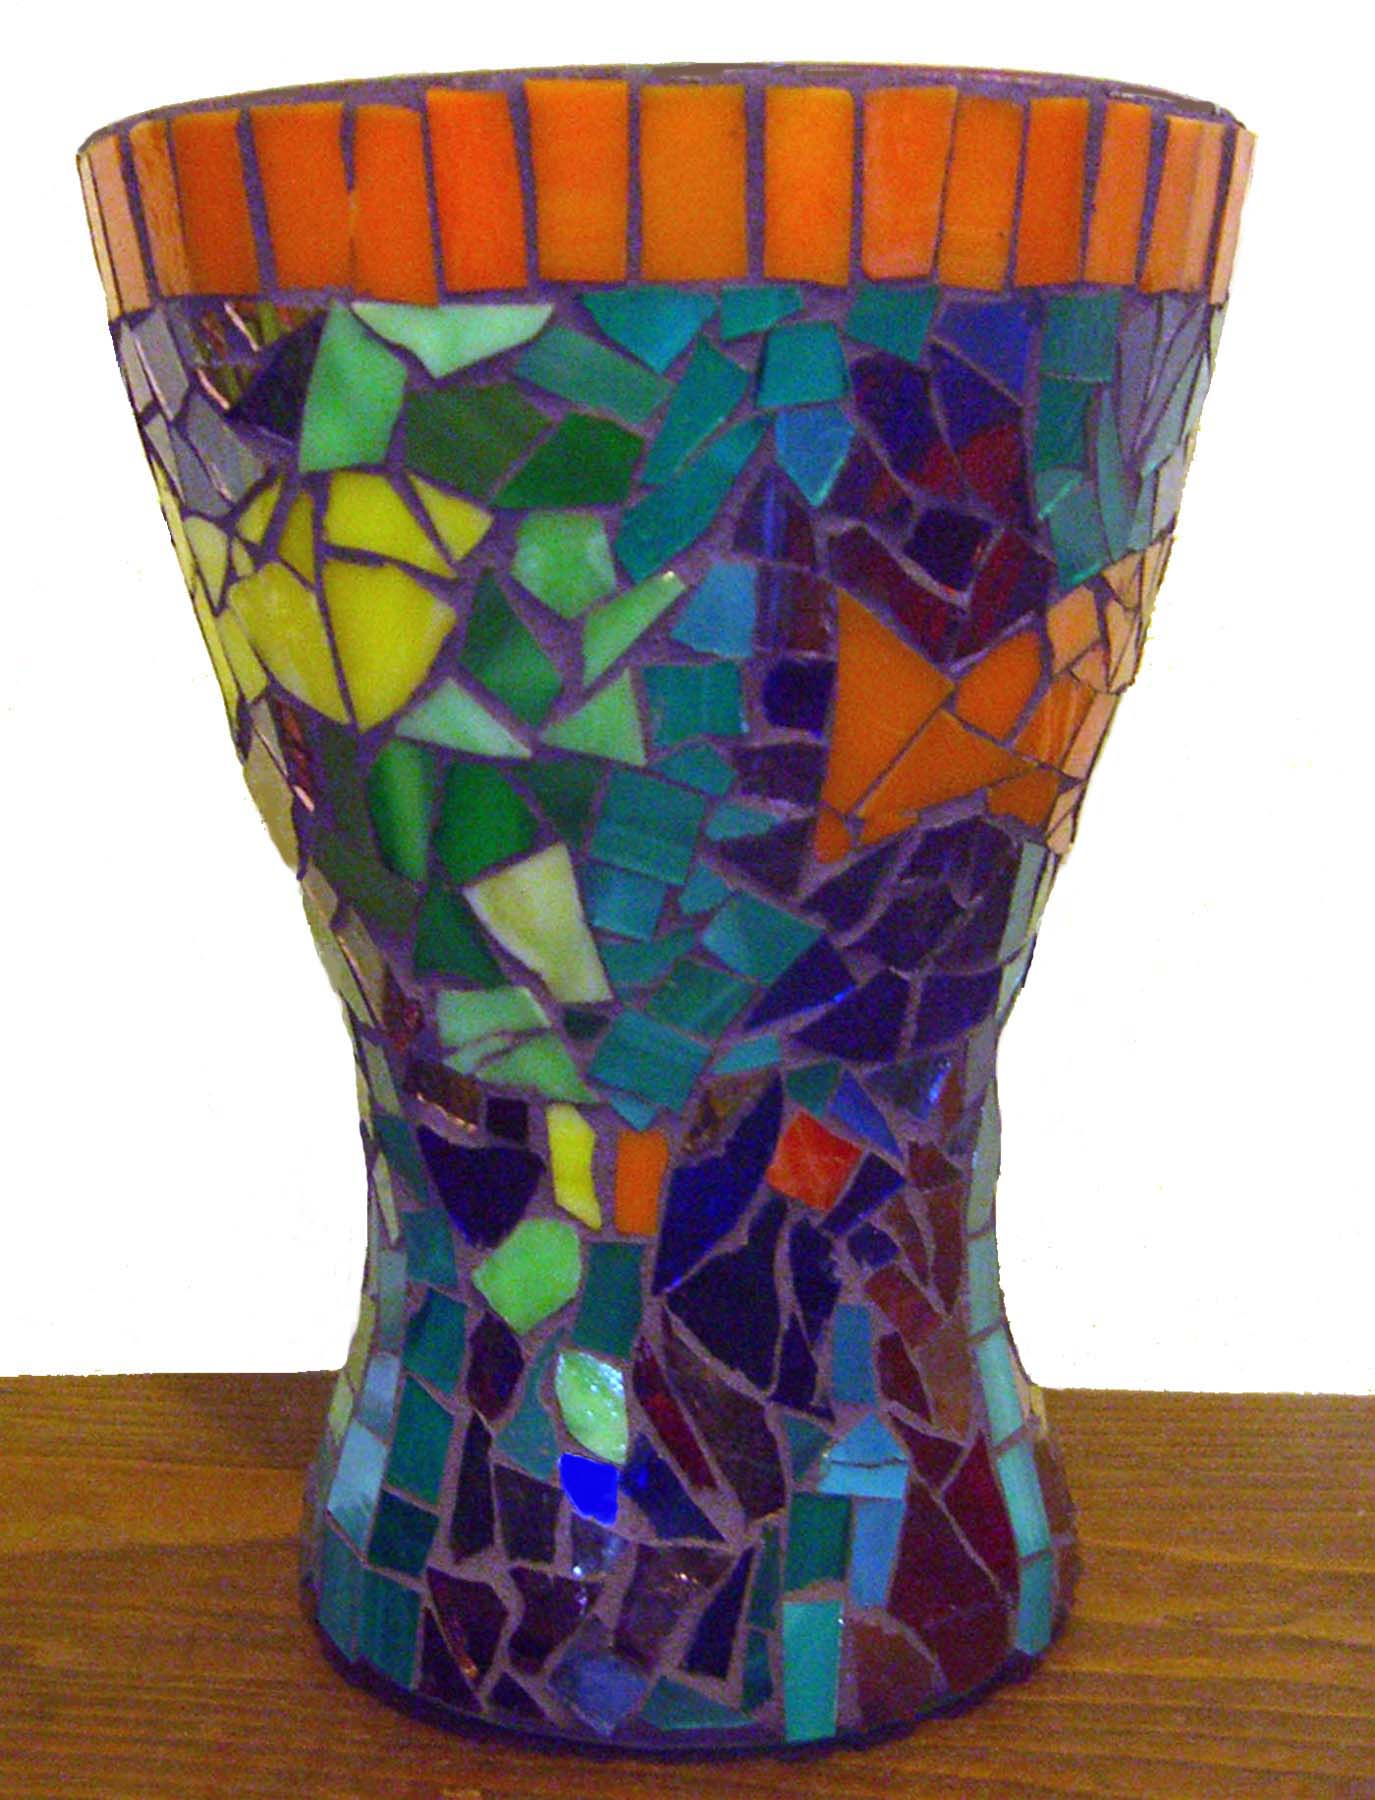 4 Fishes Glass on Glass mosaic